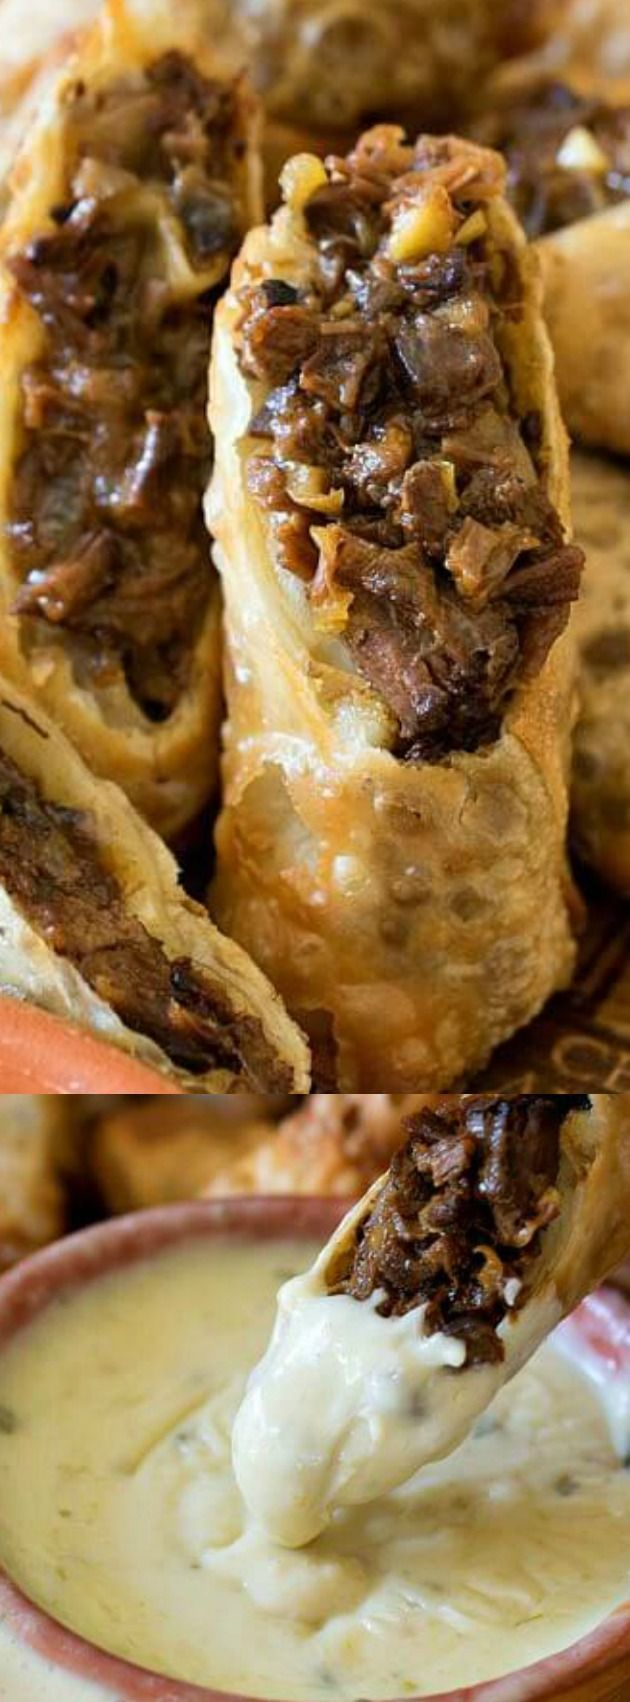 These Cheesesteak Egg Rolls from A Family Feast are definitely going to become your new favorite way to make egg rolls! The recipe uses beef brisket that is braised in a combination of root beer and au jus sauce. Once done it's shredded, added to a combin